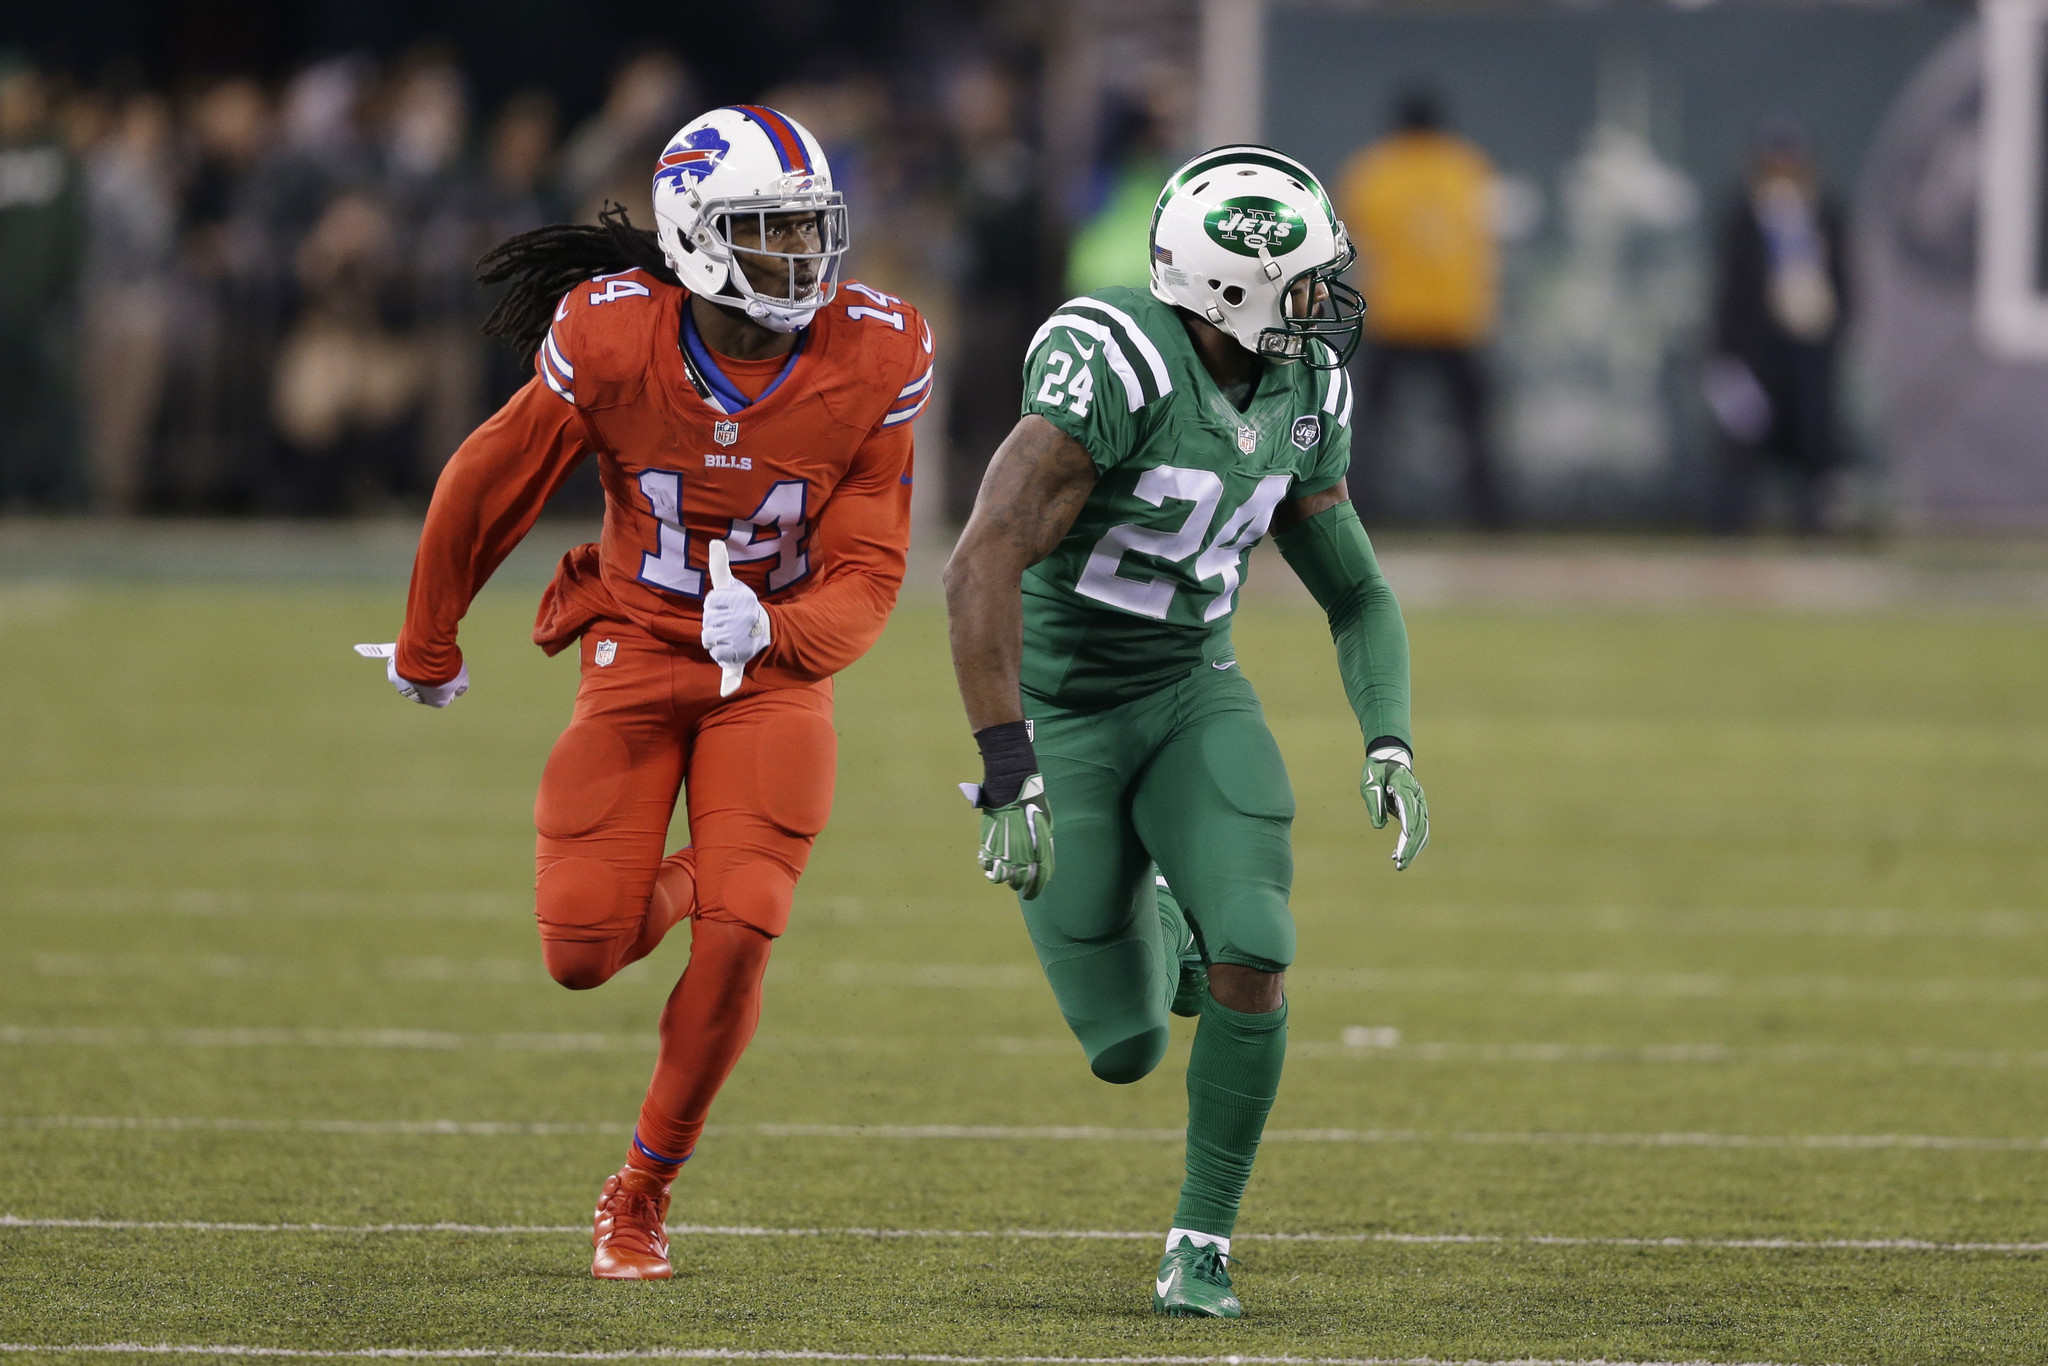 NFL's 'Color Rush' uniforms are back, and this time they're color ...